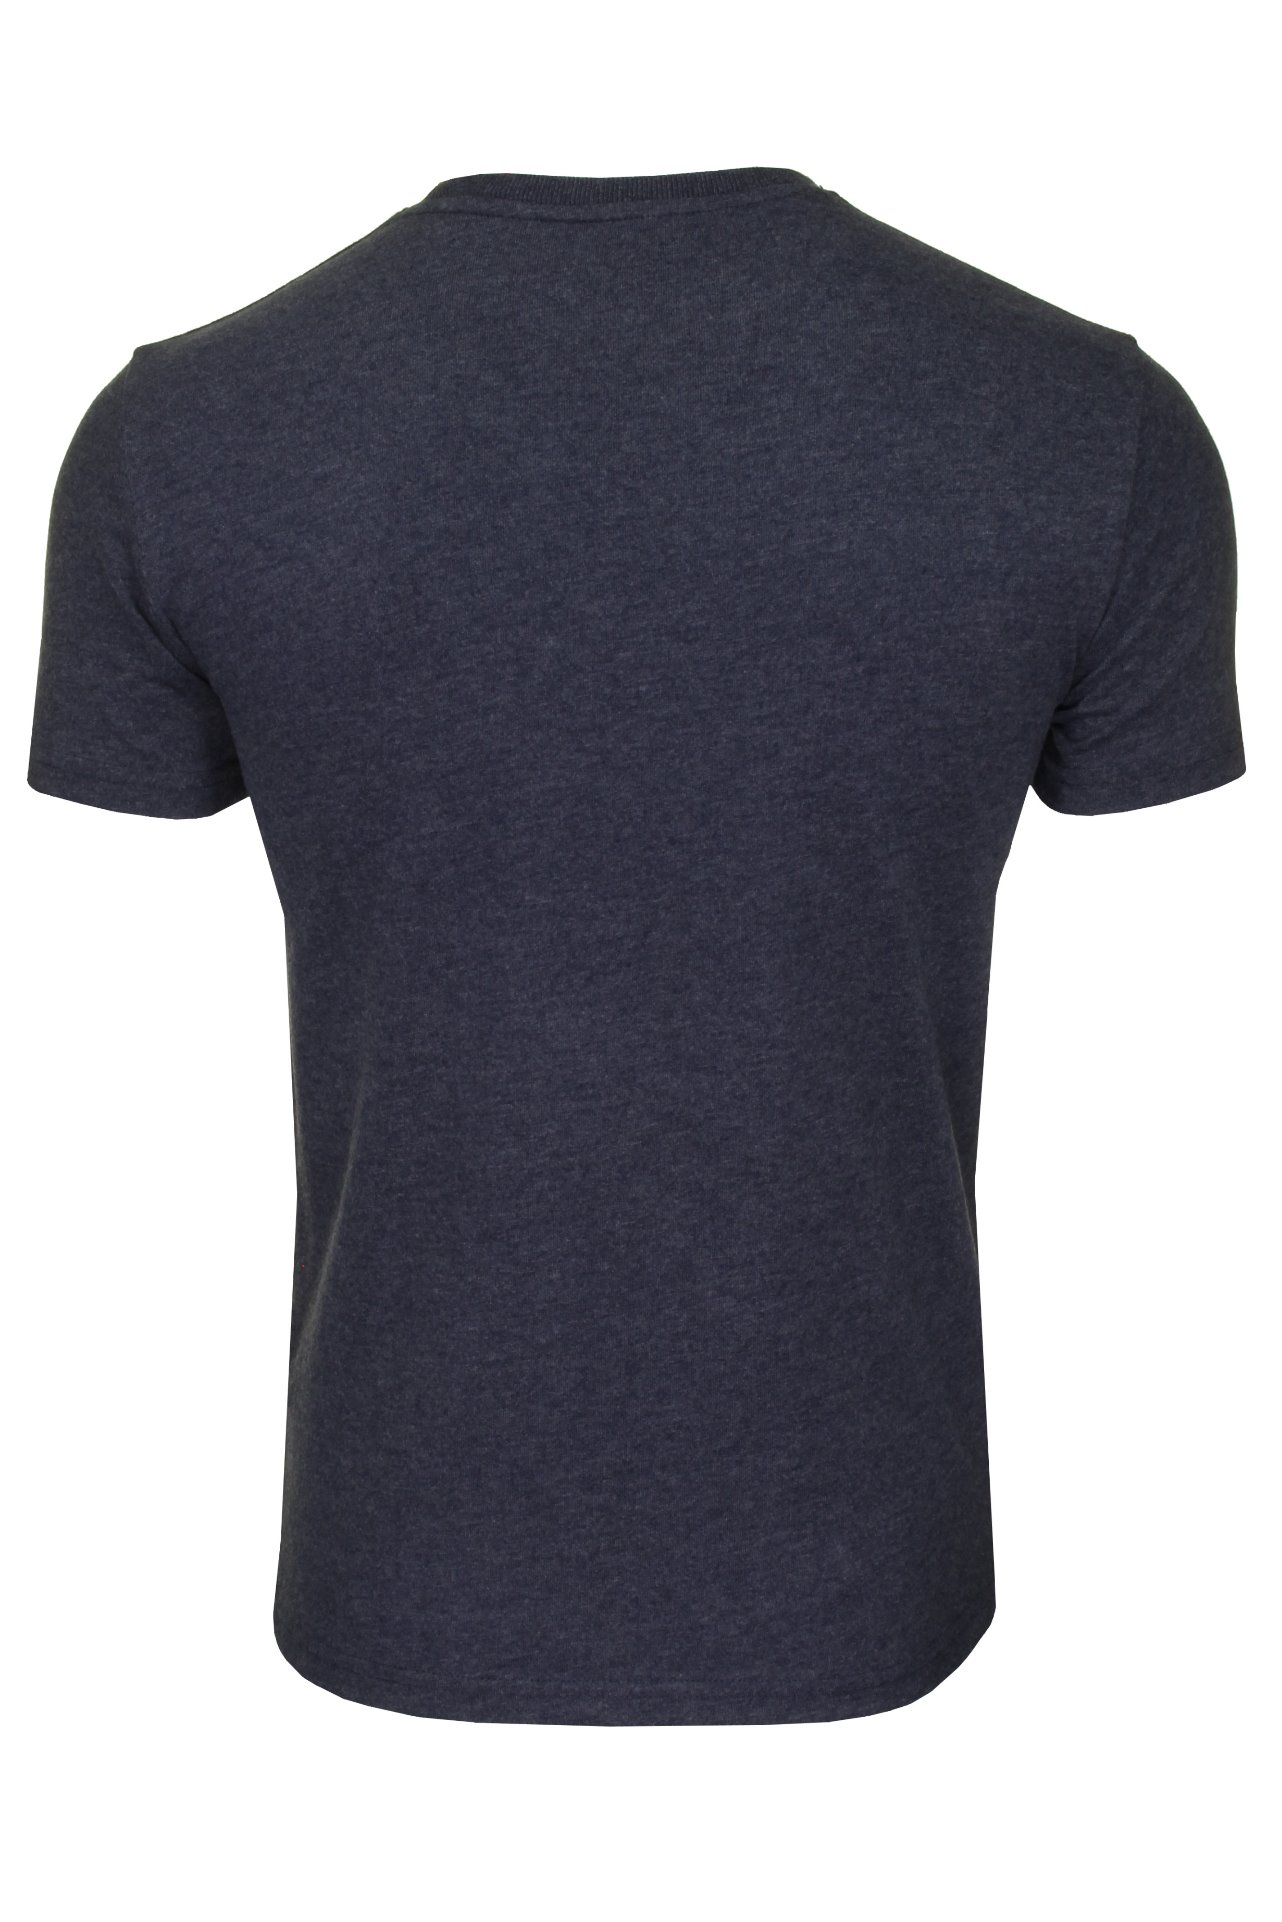 Superdry-T-shirt-homme-034-Fade-T-shirt-BOUTIQUE-TEE-034 miniature 3